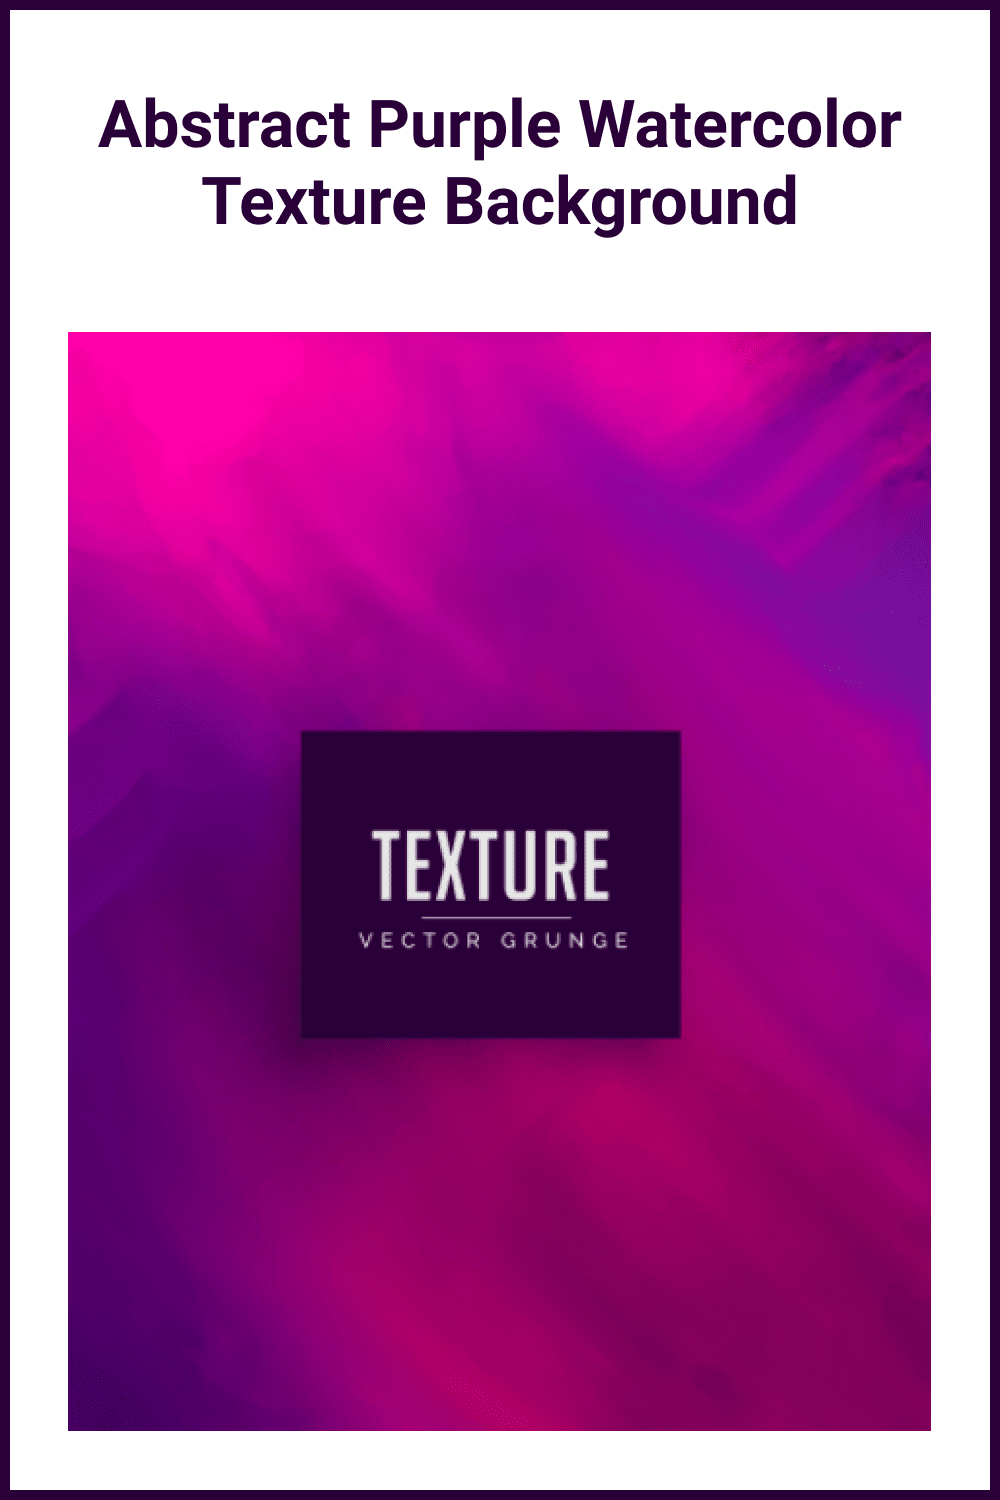 Abstract purple watercolor texture background.